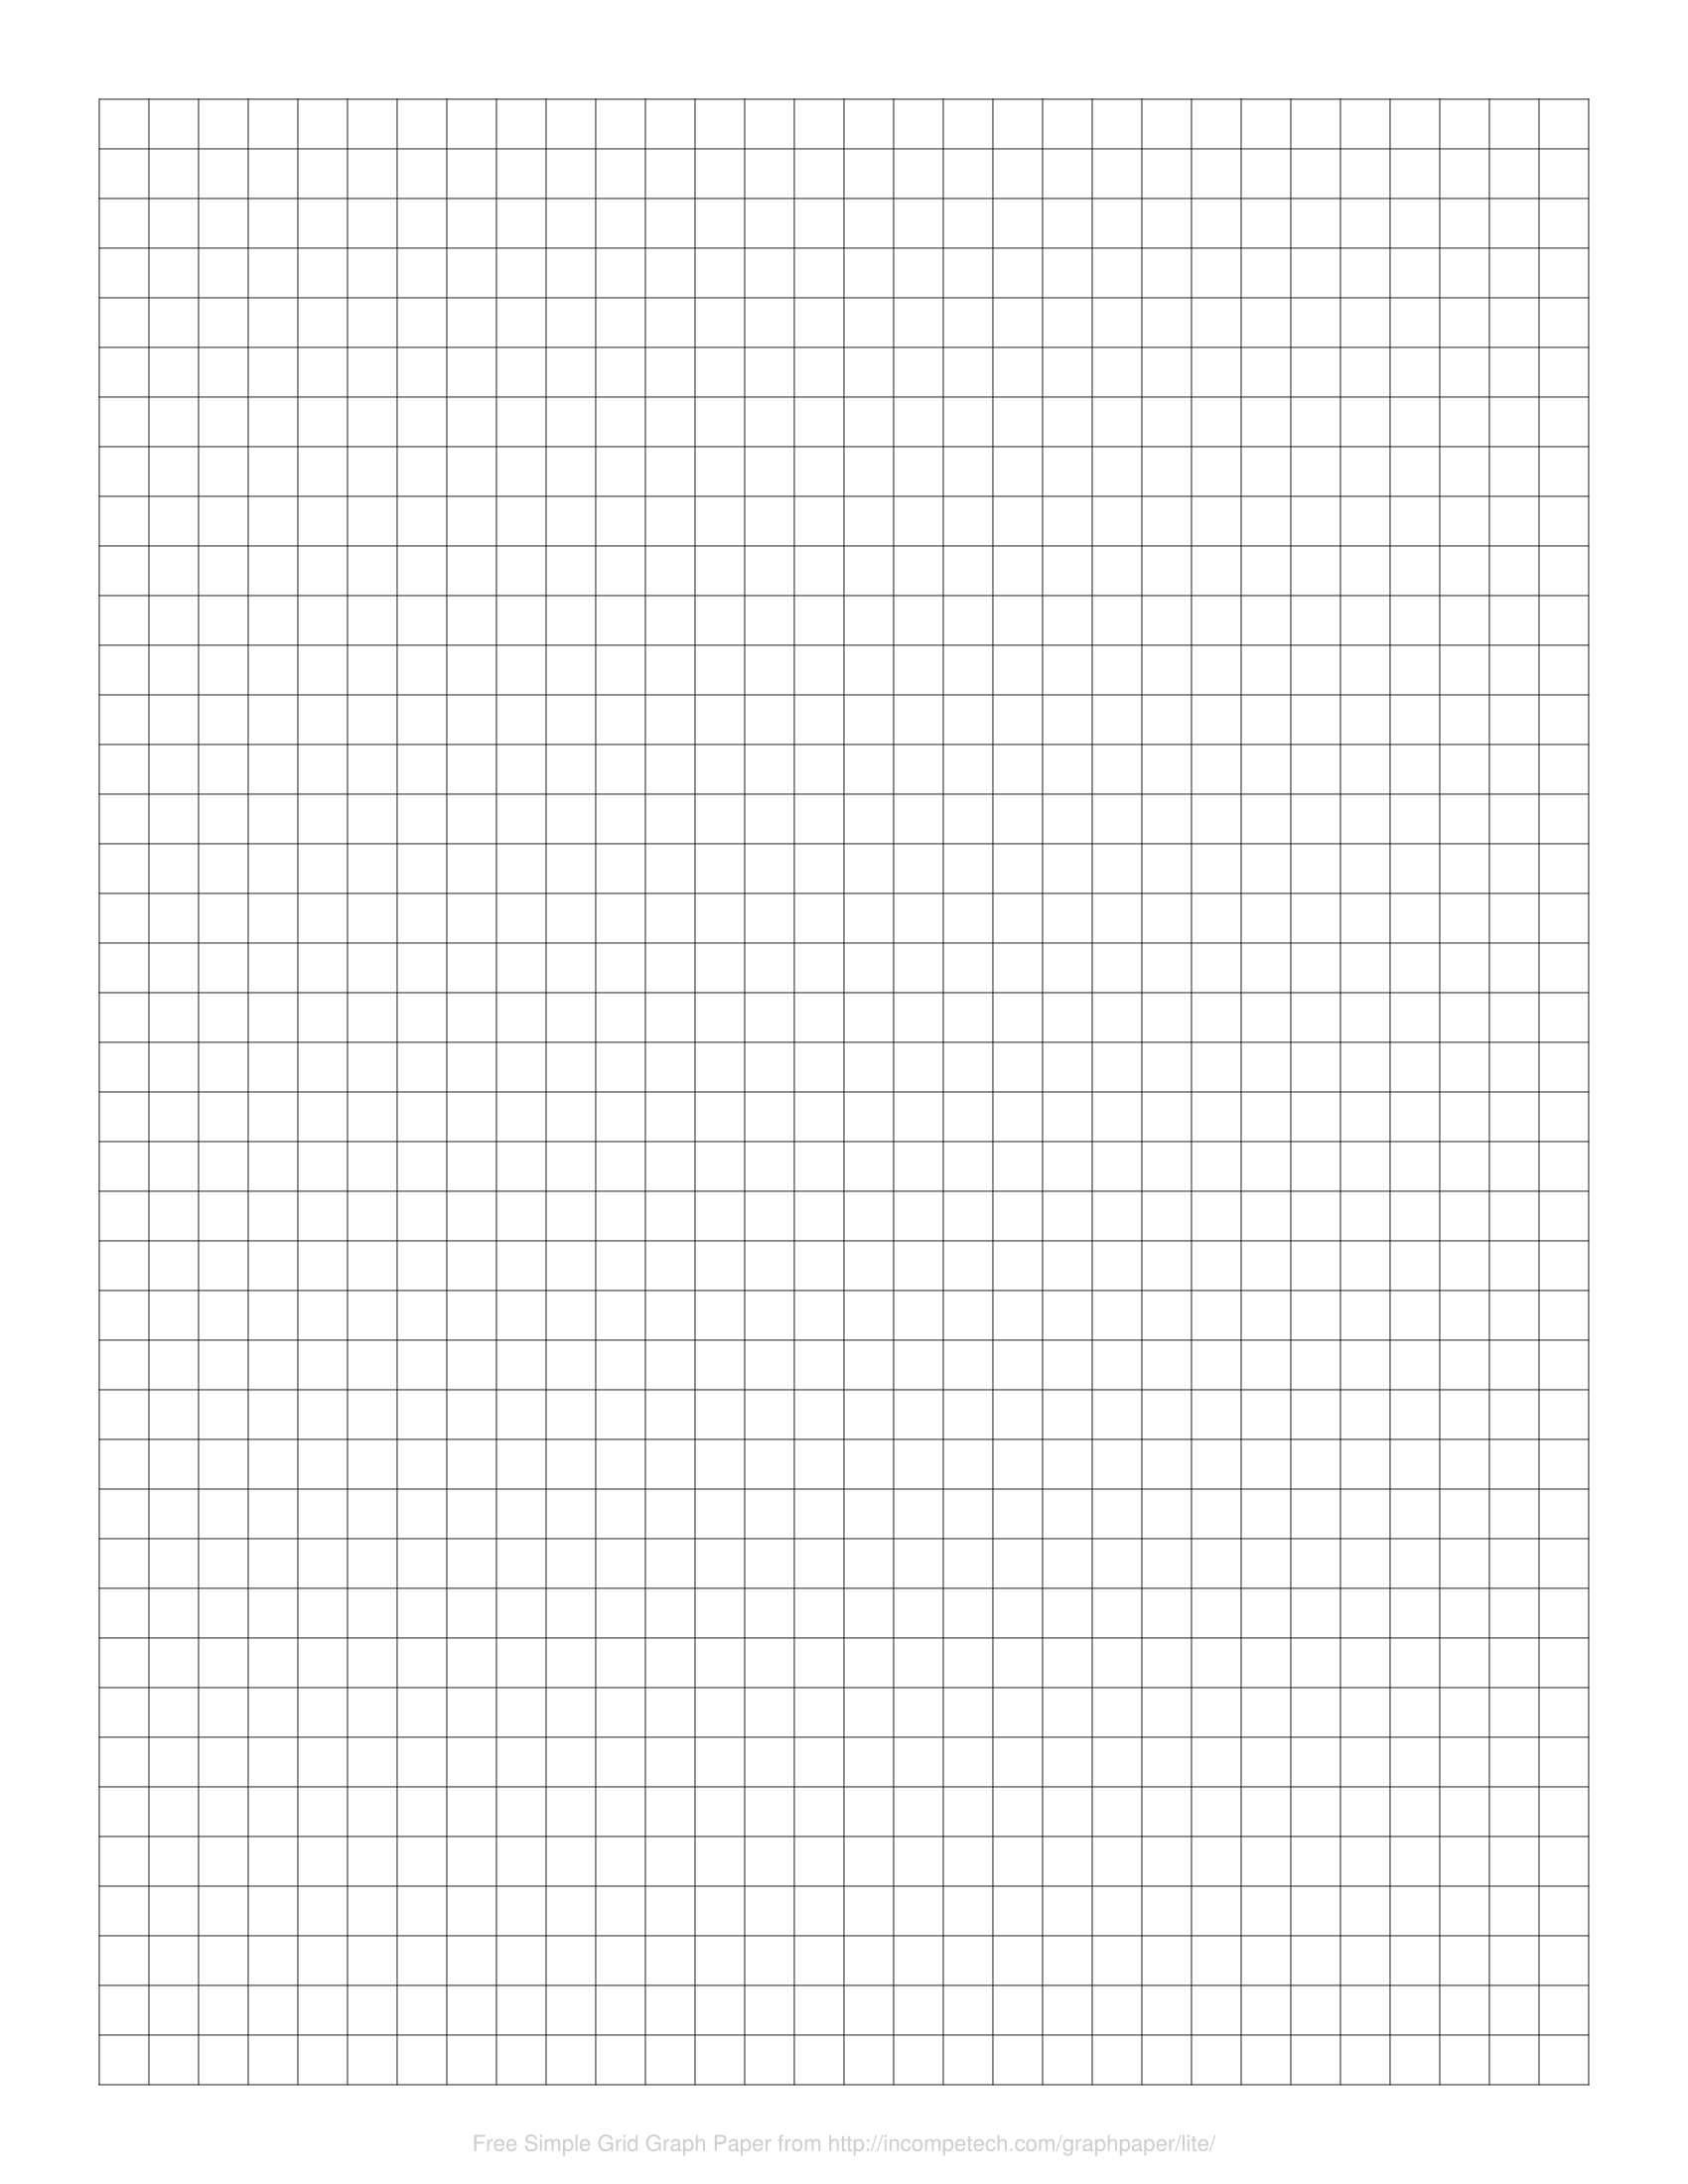 Graph Paper 25X25 - Calep.midnightpig.co